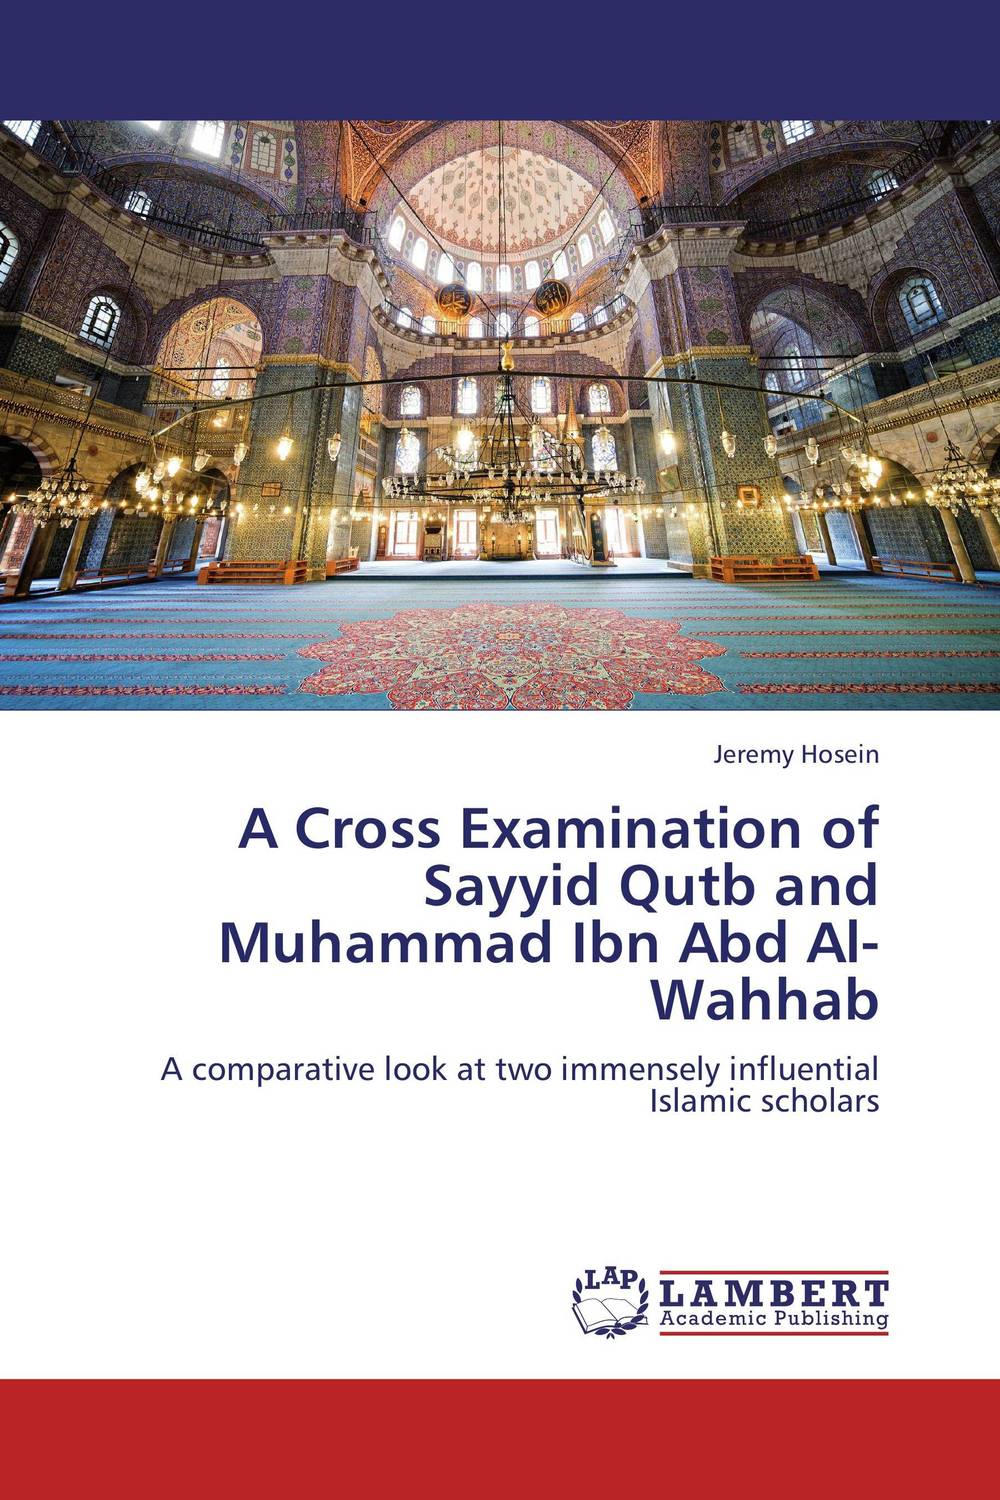 A Cross Examination of Sayyid Qutb and Muhammad Ibn Abd Al-Wahhab muhammad shamoon muhammad atif randhawa and muhammad wasim sajid assessment of afm1 in milk collected from different dairy farms